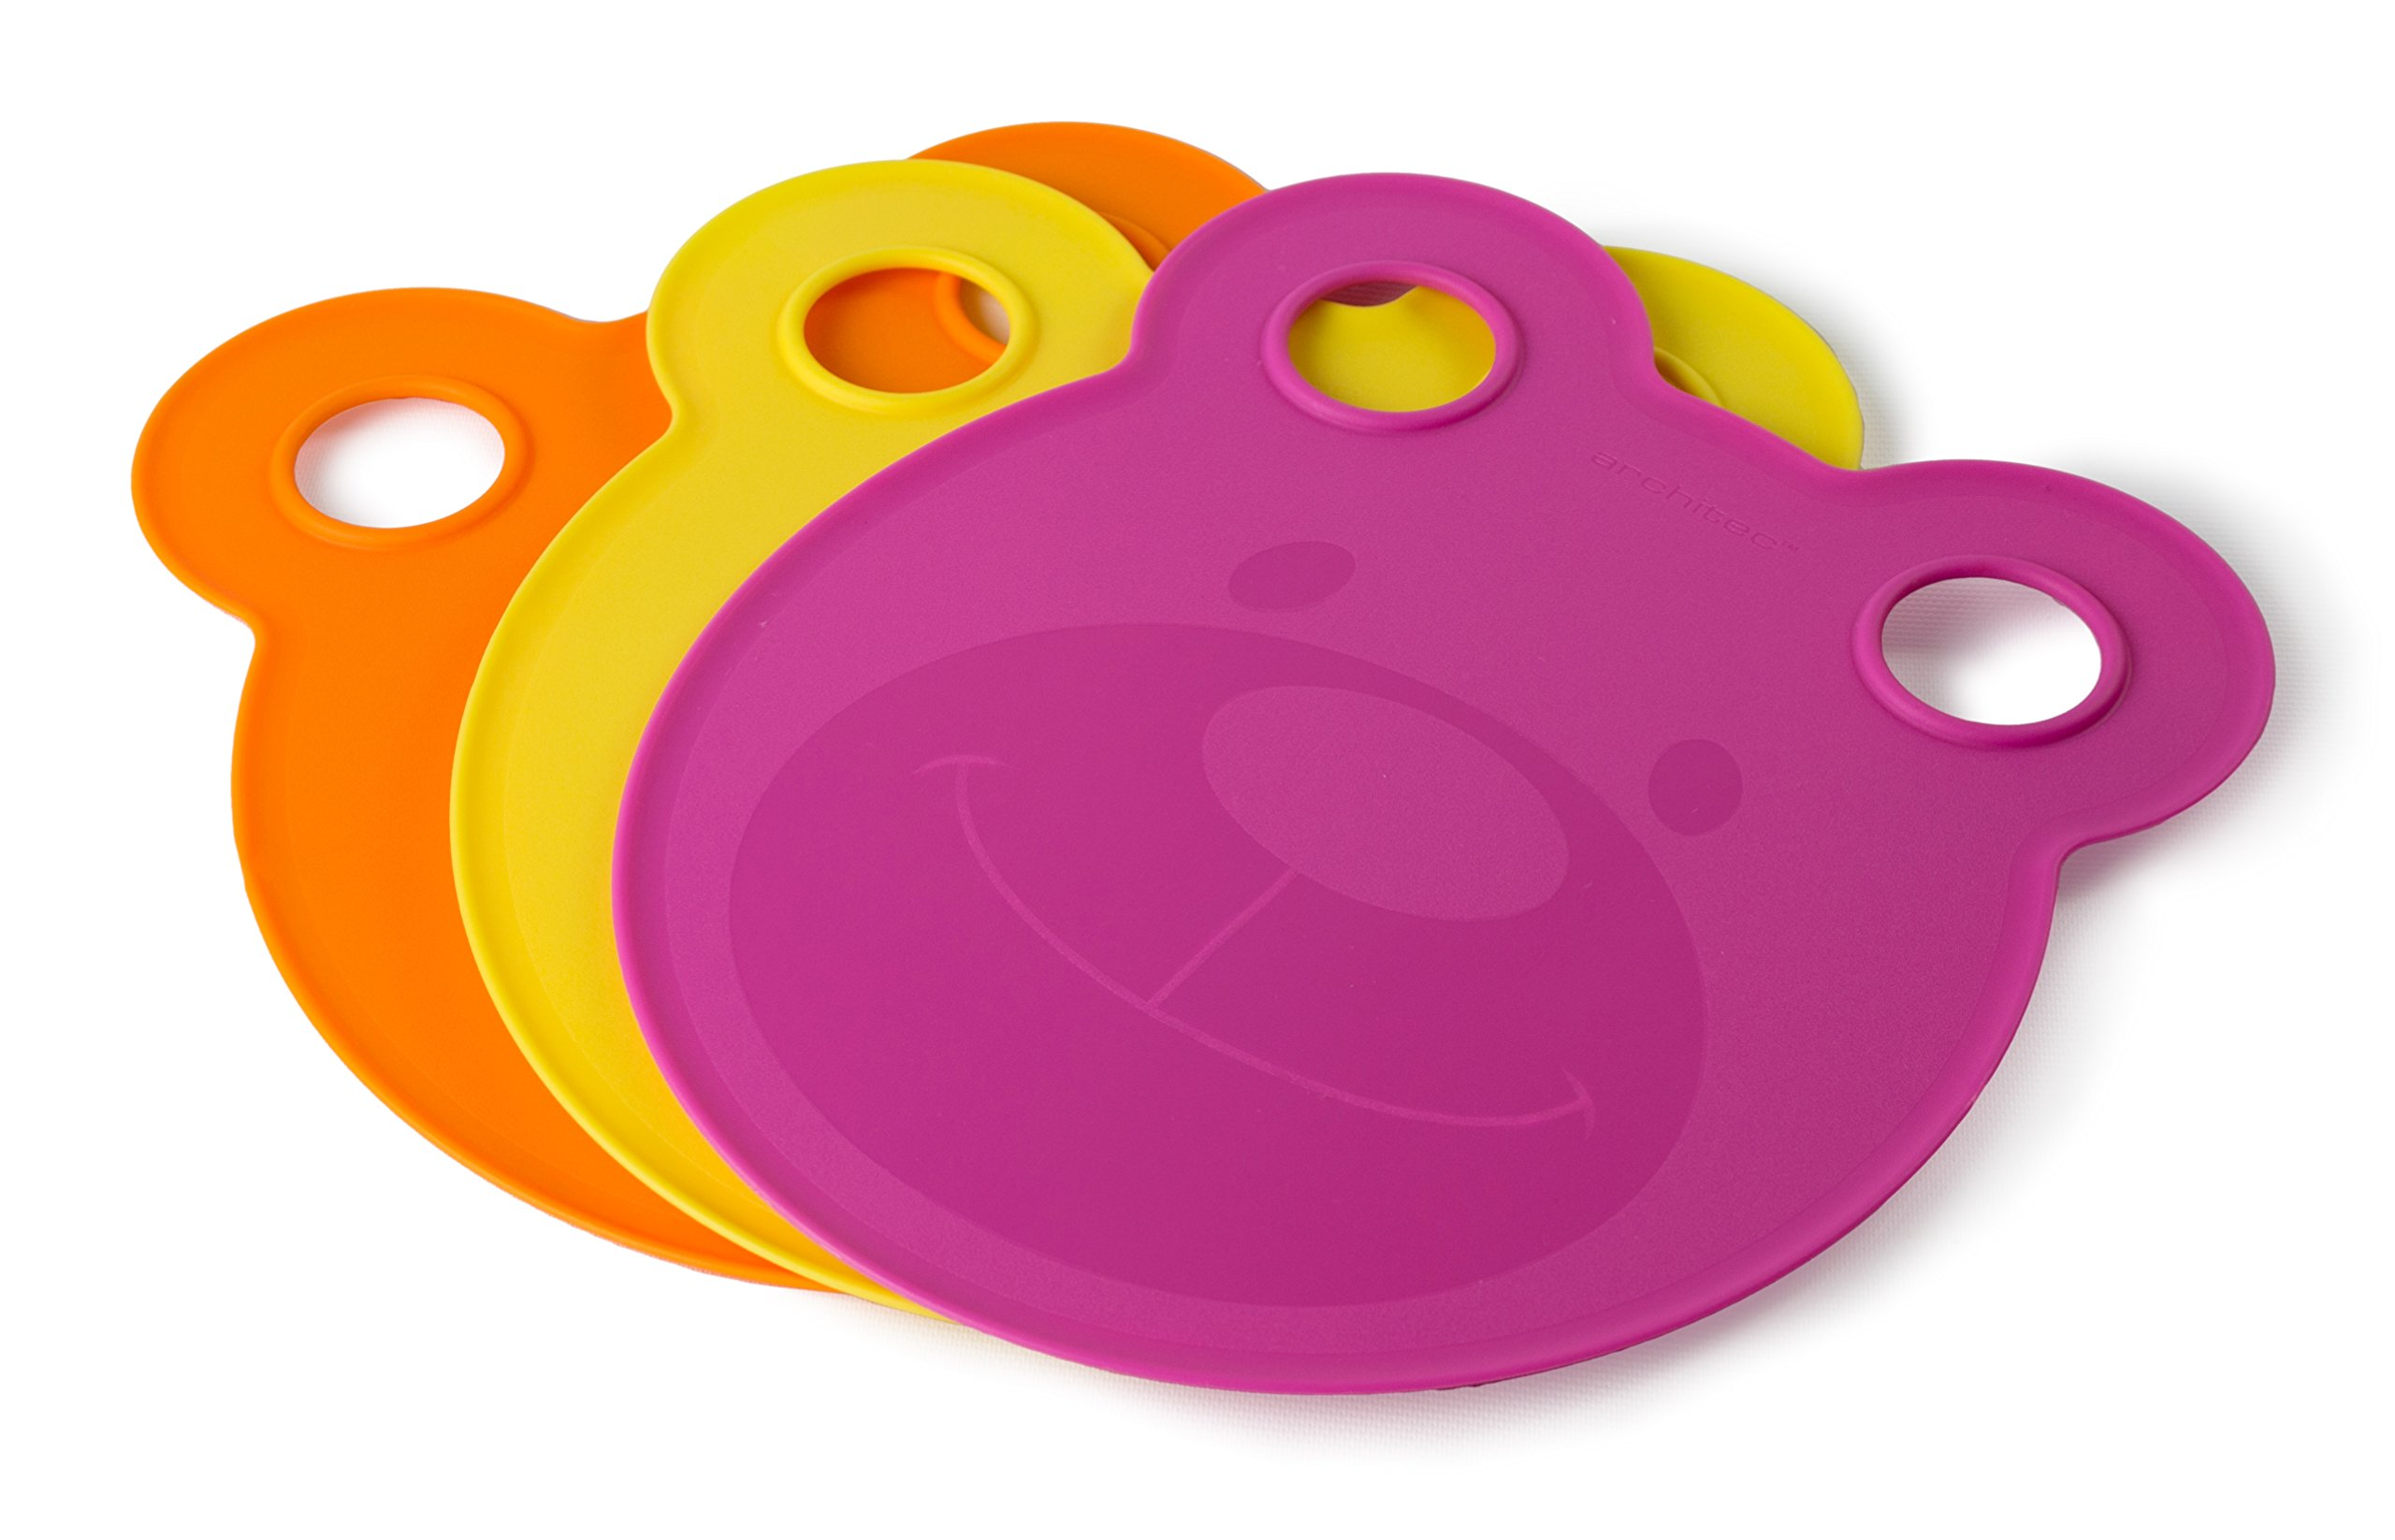 Architec Kid's Cut & Serve Cutting Board Plates, Pink/Yellow/Orange, BPA-free and Dishwasher Safe Plastic, Made in the USA